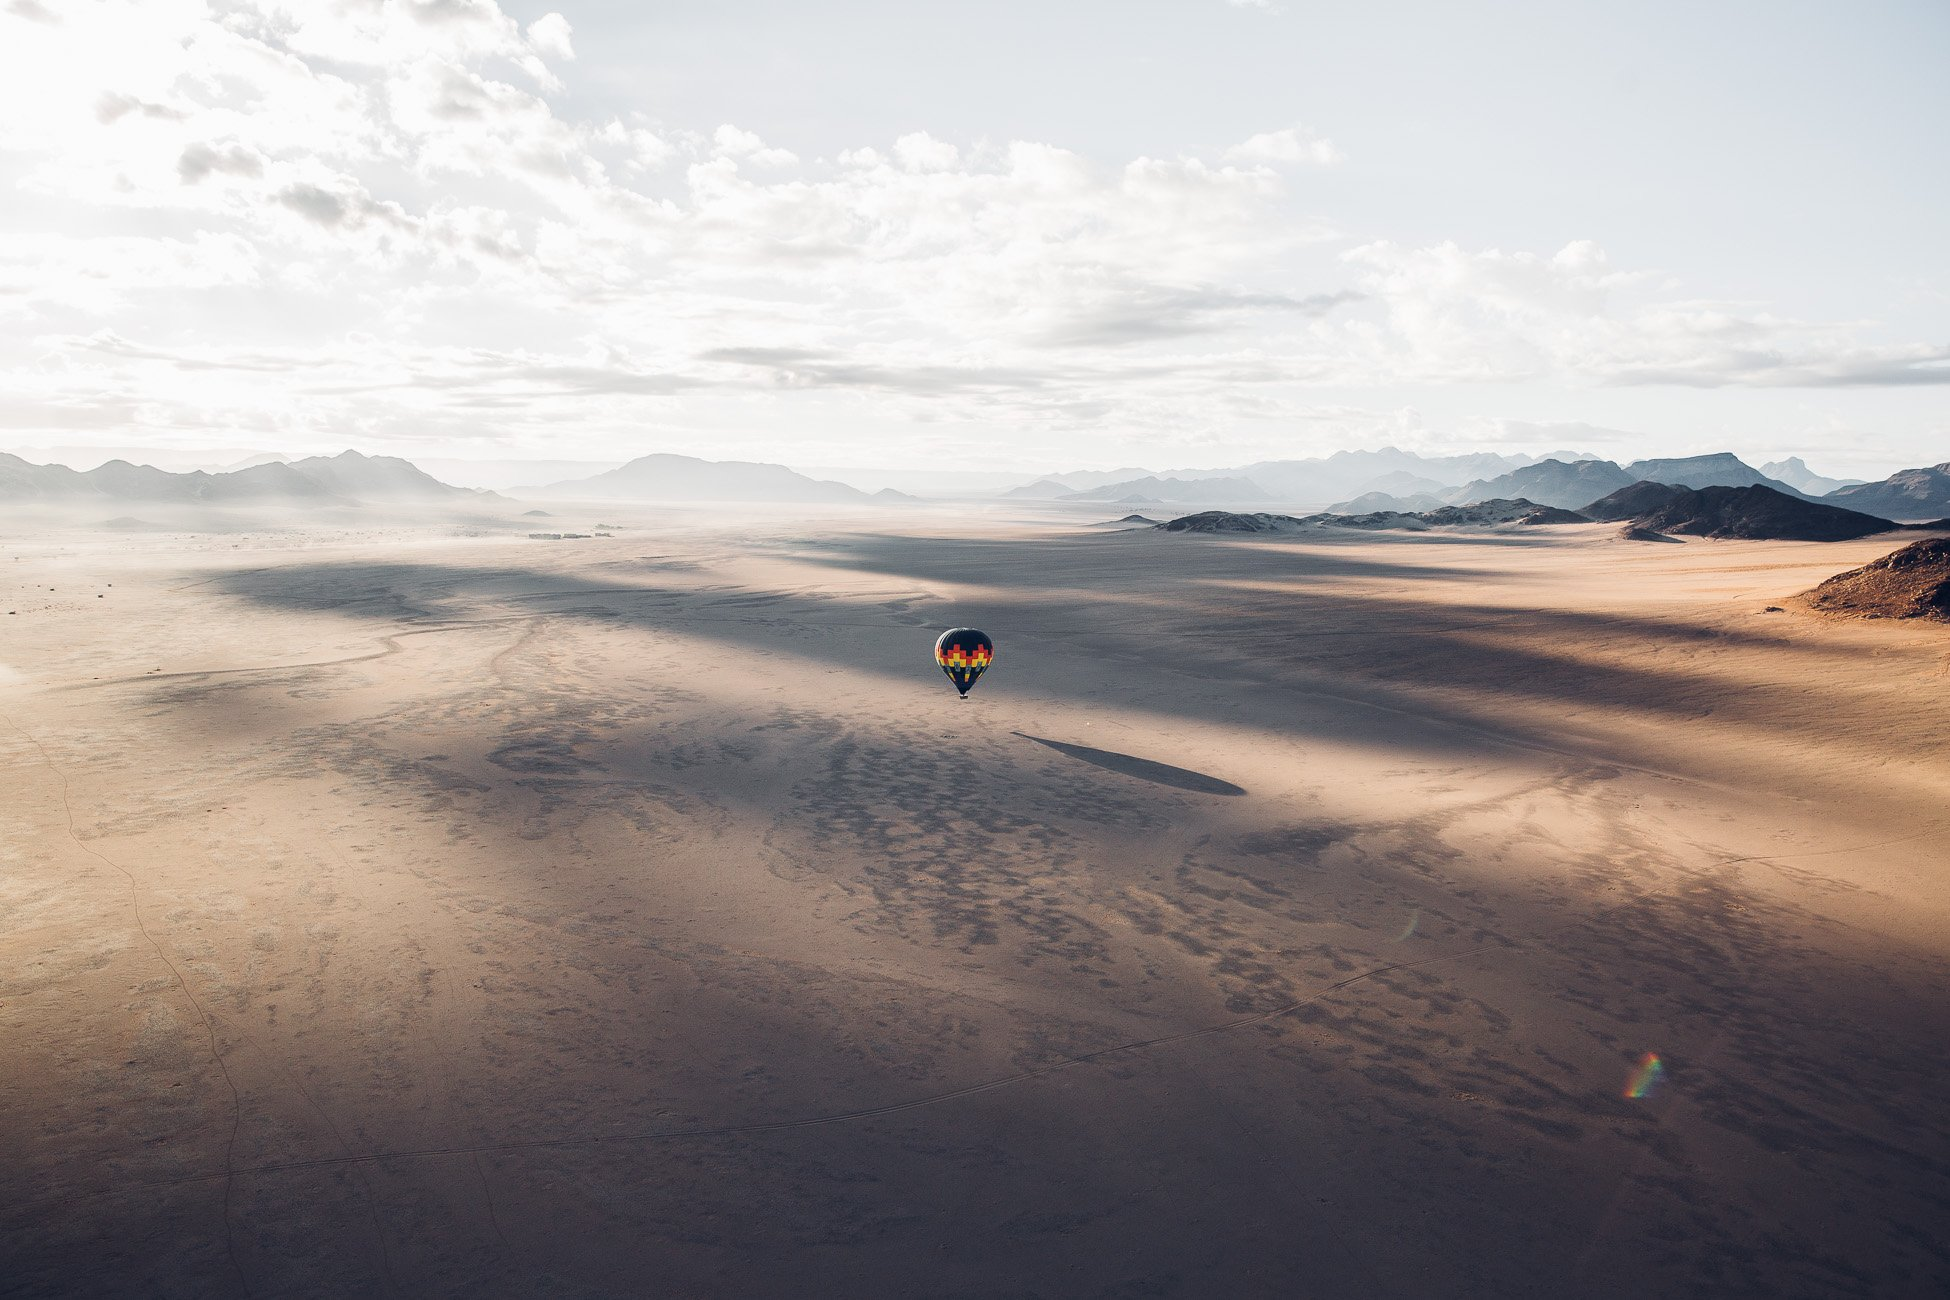 Hot air balloon ride at Sossusvlei Namibia